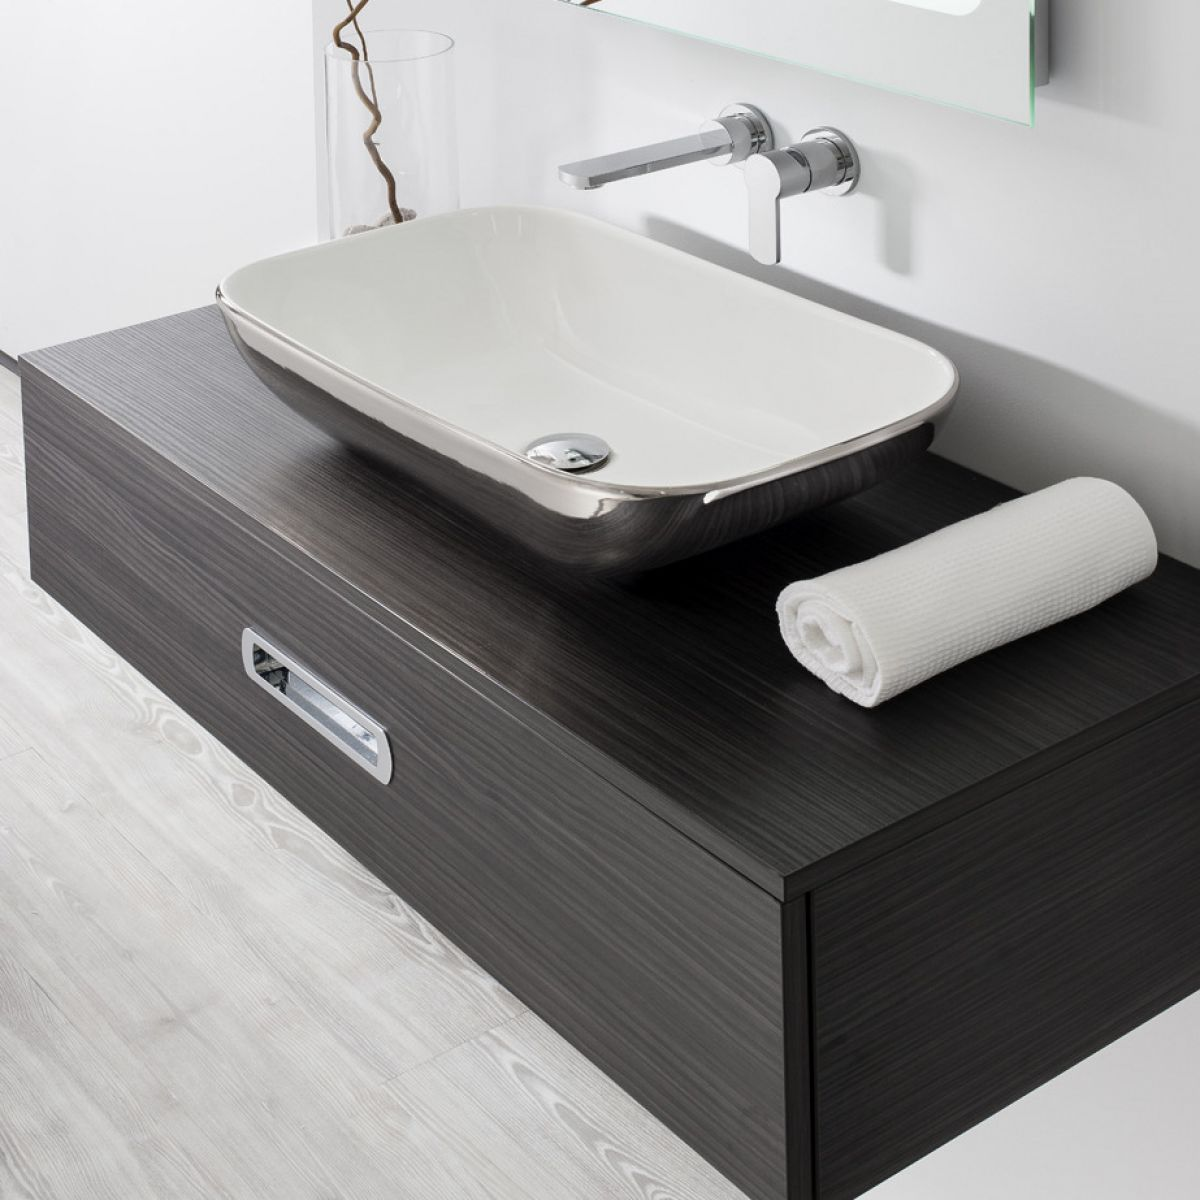 Bauhaus Serene Countertop Basin Uk Bathrooms